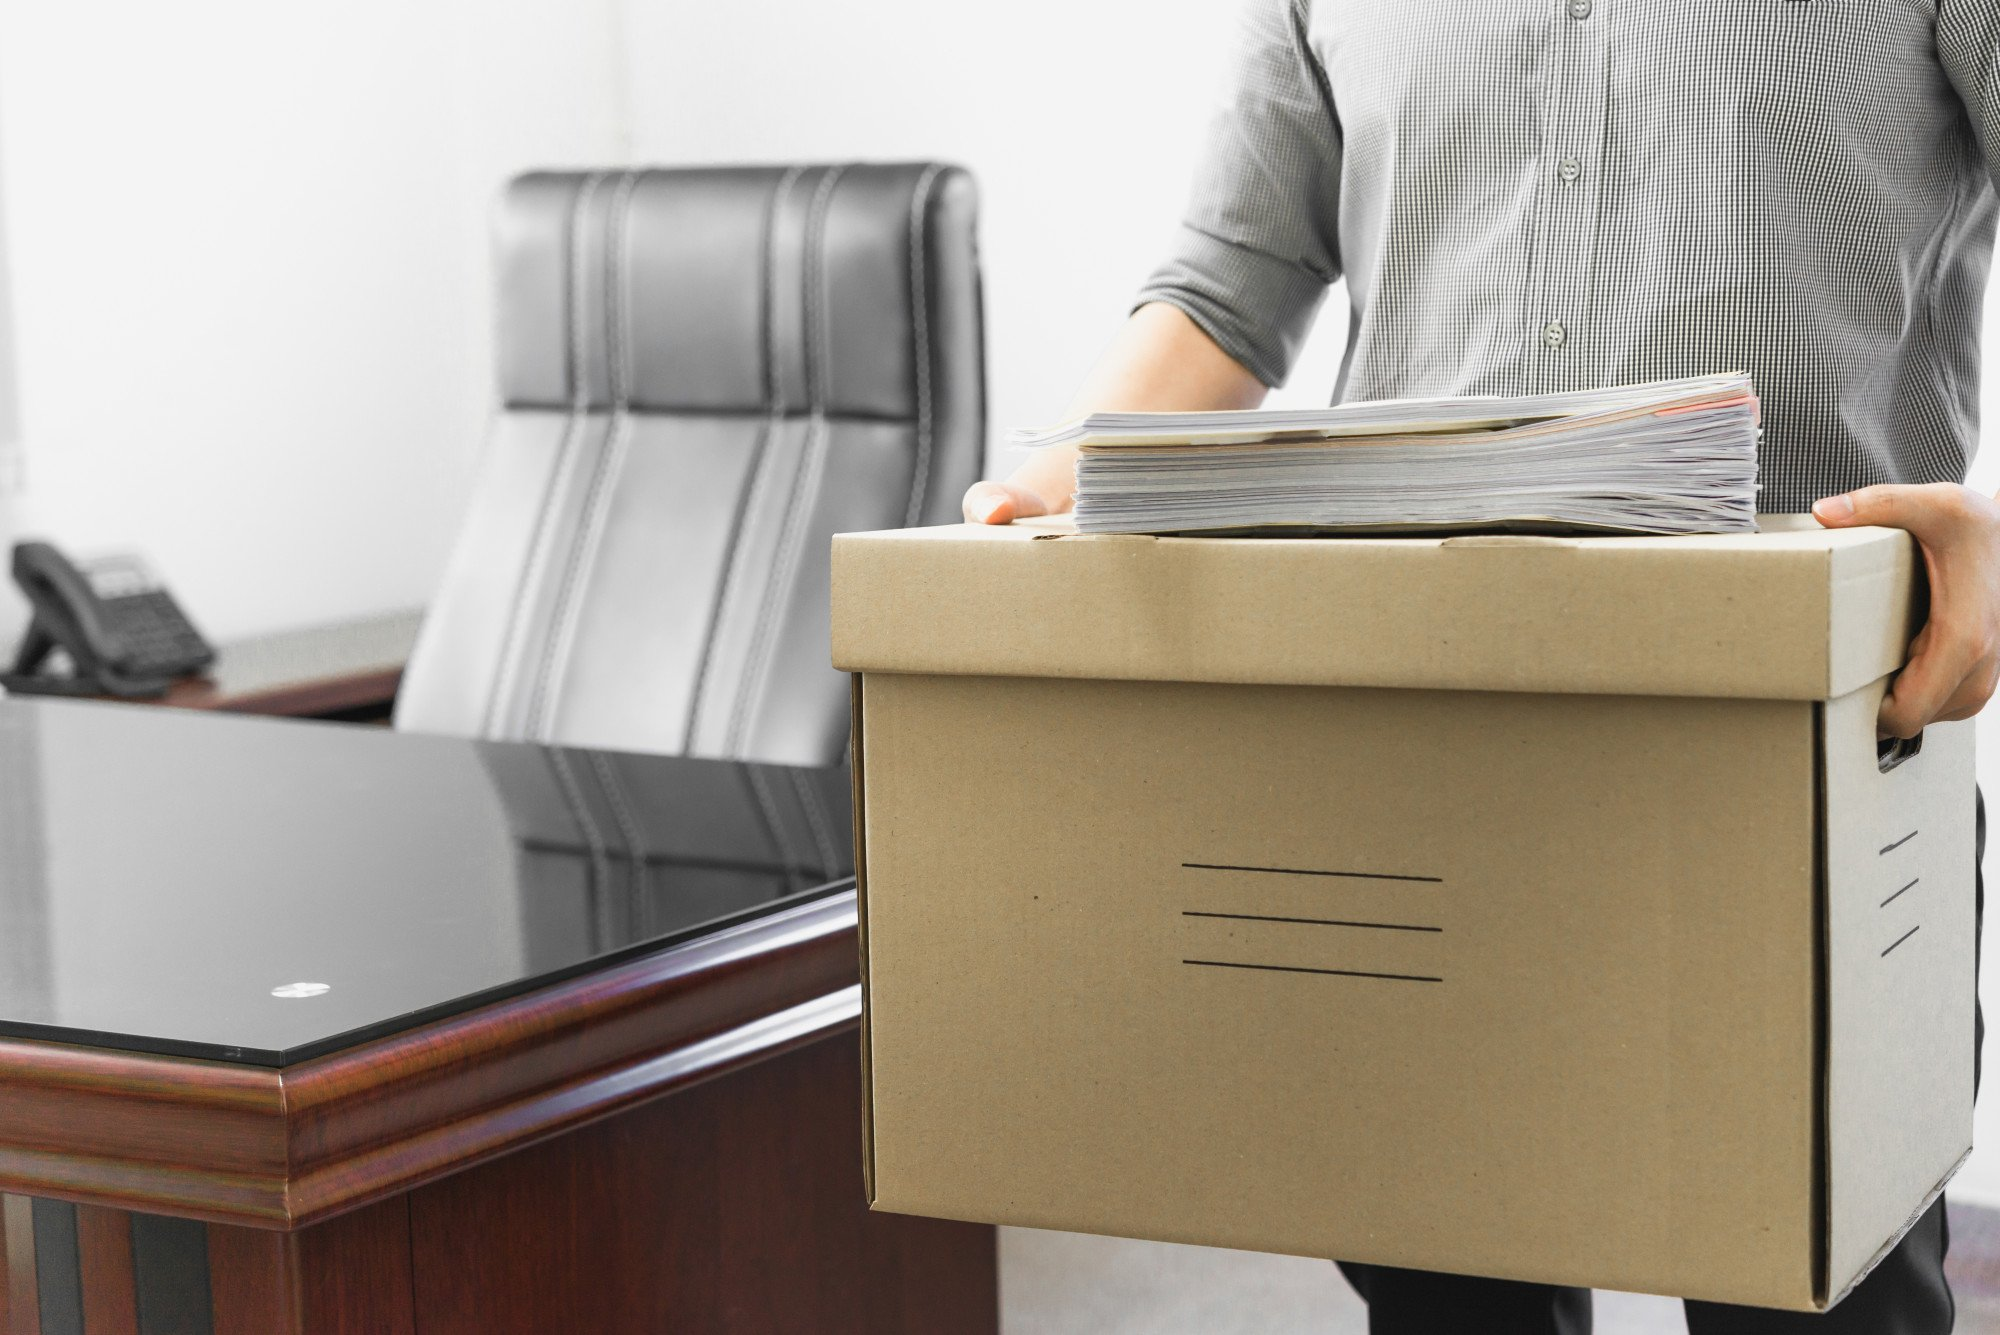 Upset employee packing belongings in box, frustrated stressed man getting fired from job ready to leave on last day at work, sad office worker